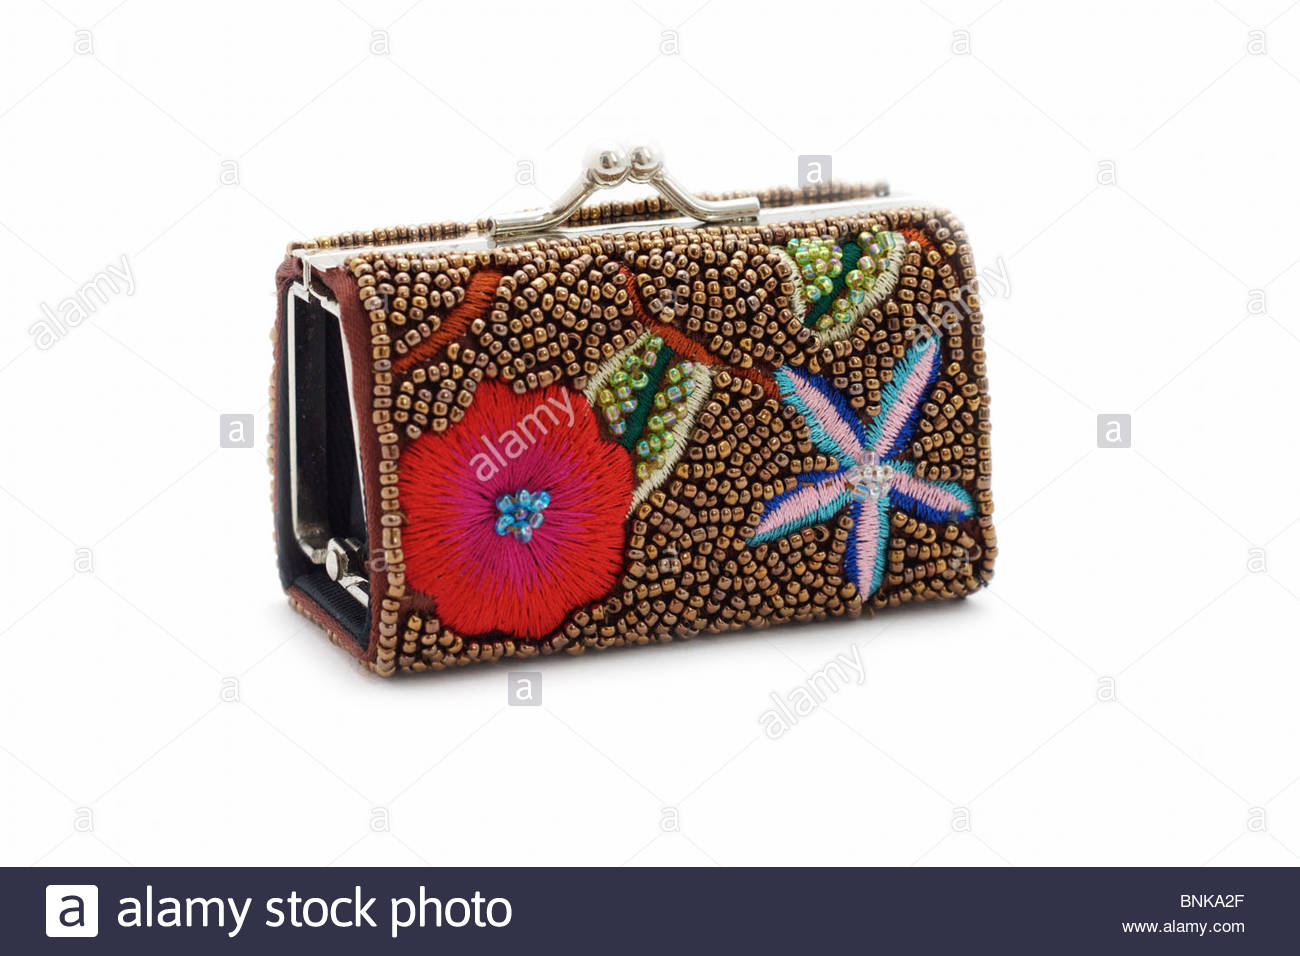 lady's purse embroidered with beads and threads - Stock Image